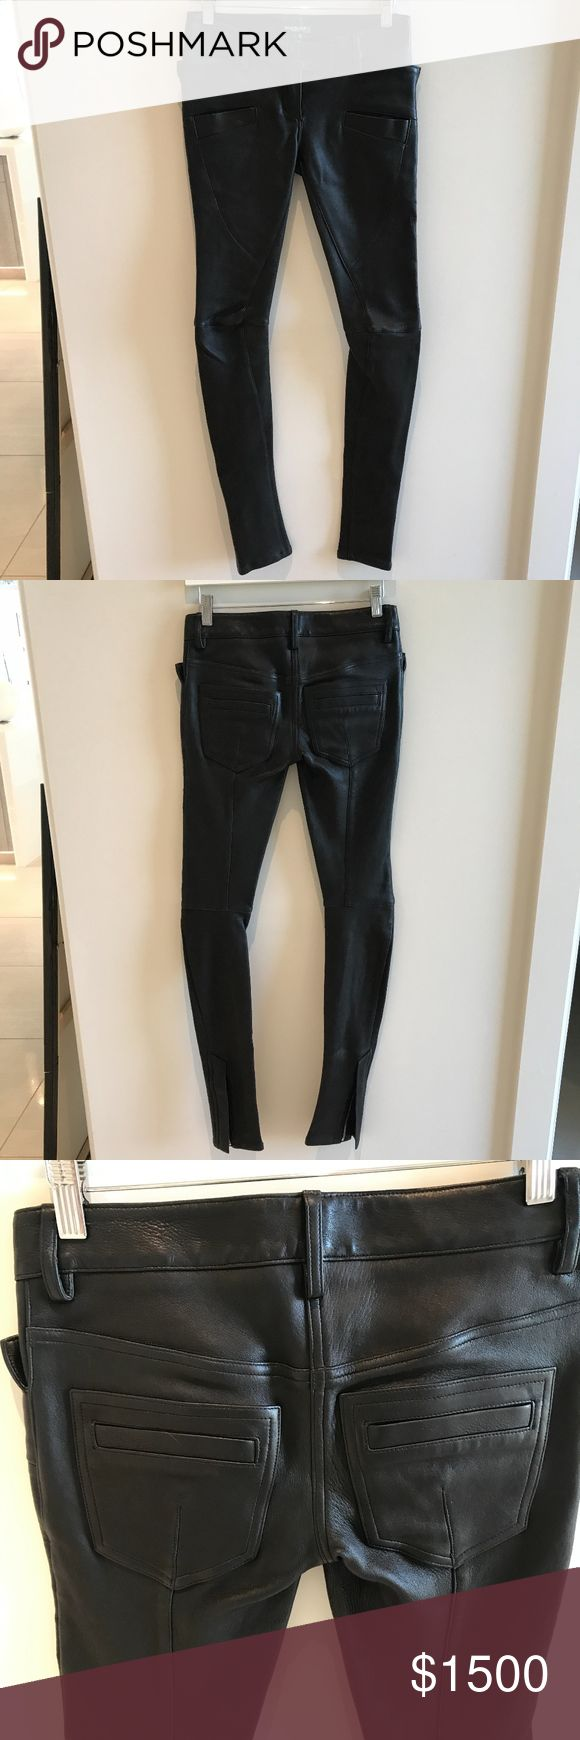 Authentic Balmain leather pants Authentic Balmain leather pants. New without tags, never worn. Super soft lambskin. Size 34 Balmain Pants